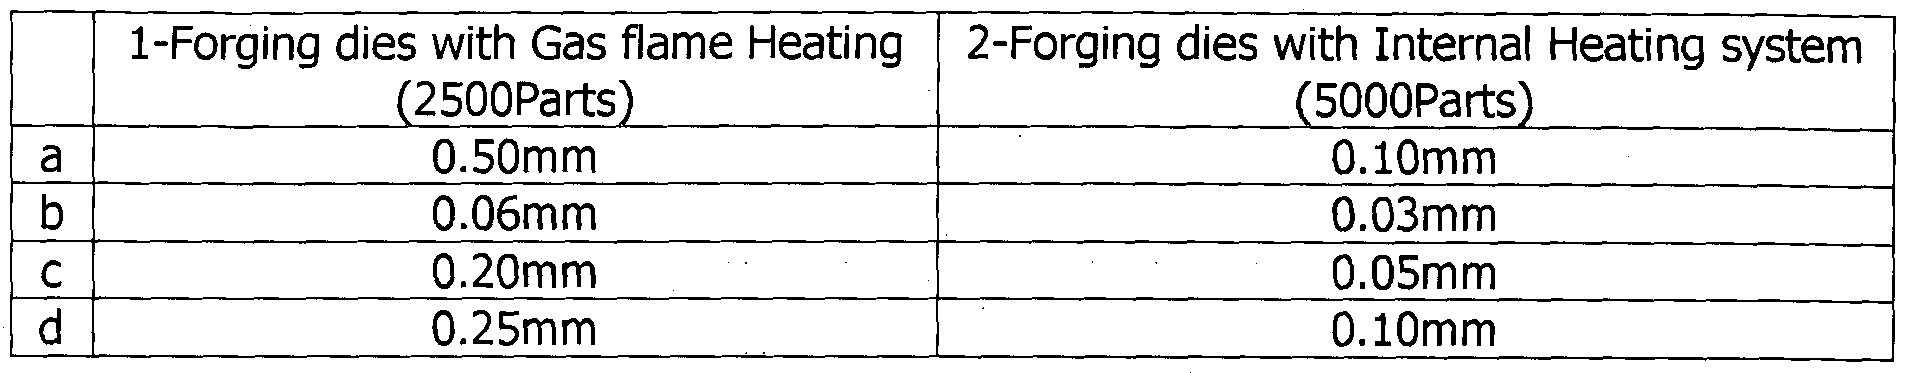 Wo2015167407a1 Forging Dies With Internal Heating System Google